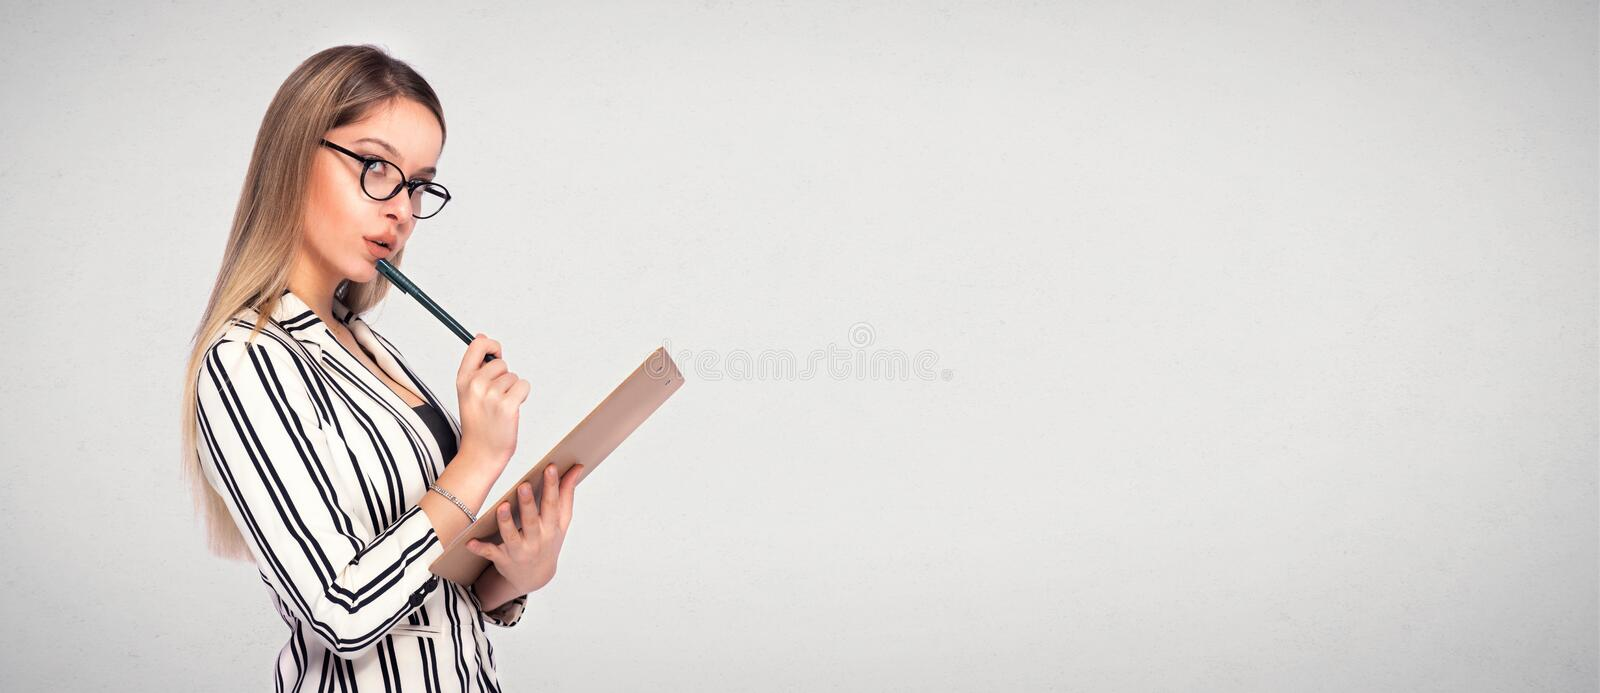 Portrait of Young Blond Secretary Taking Notes with Copy Space stock images